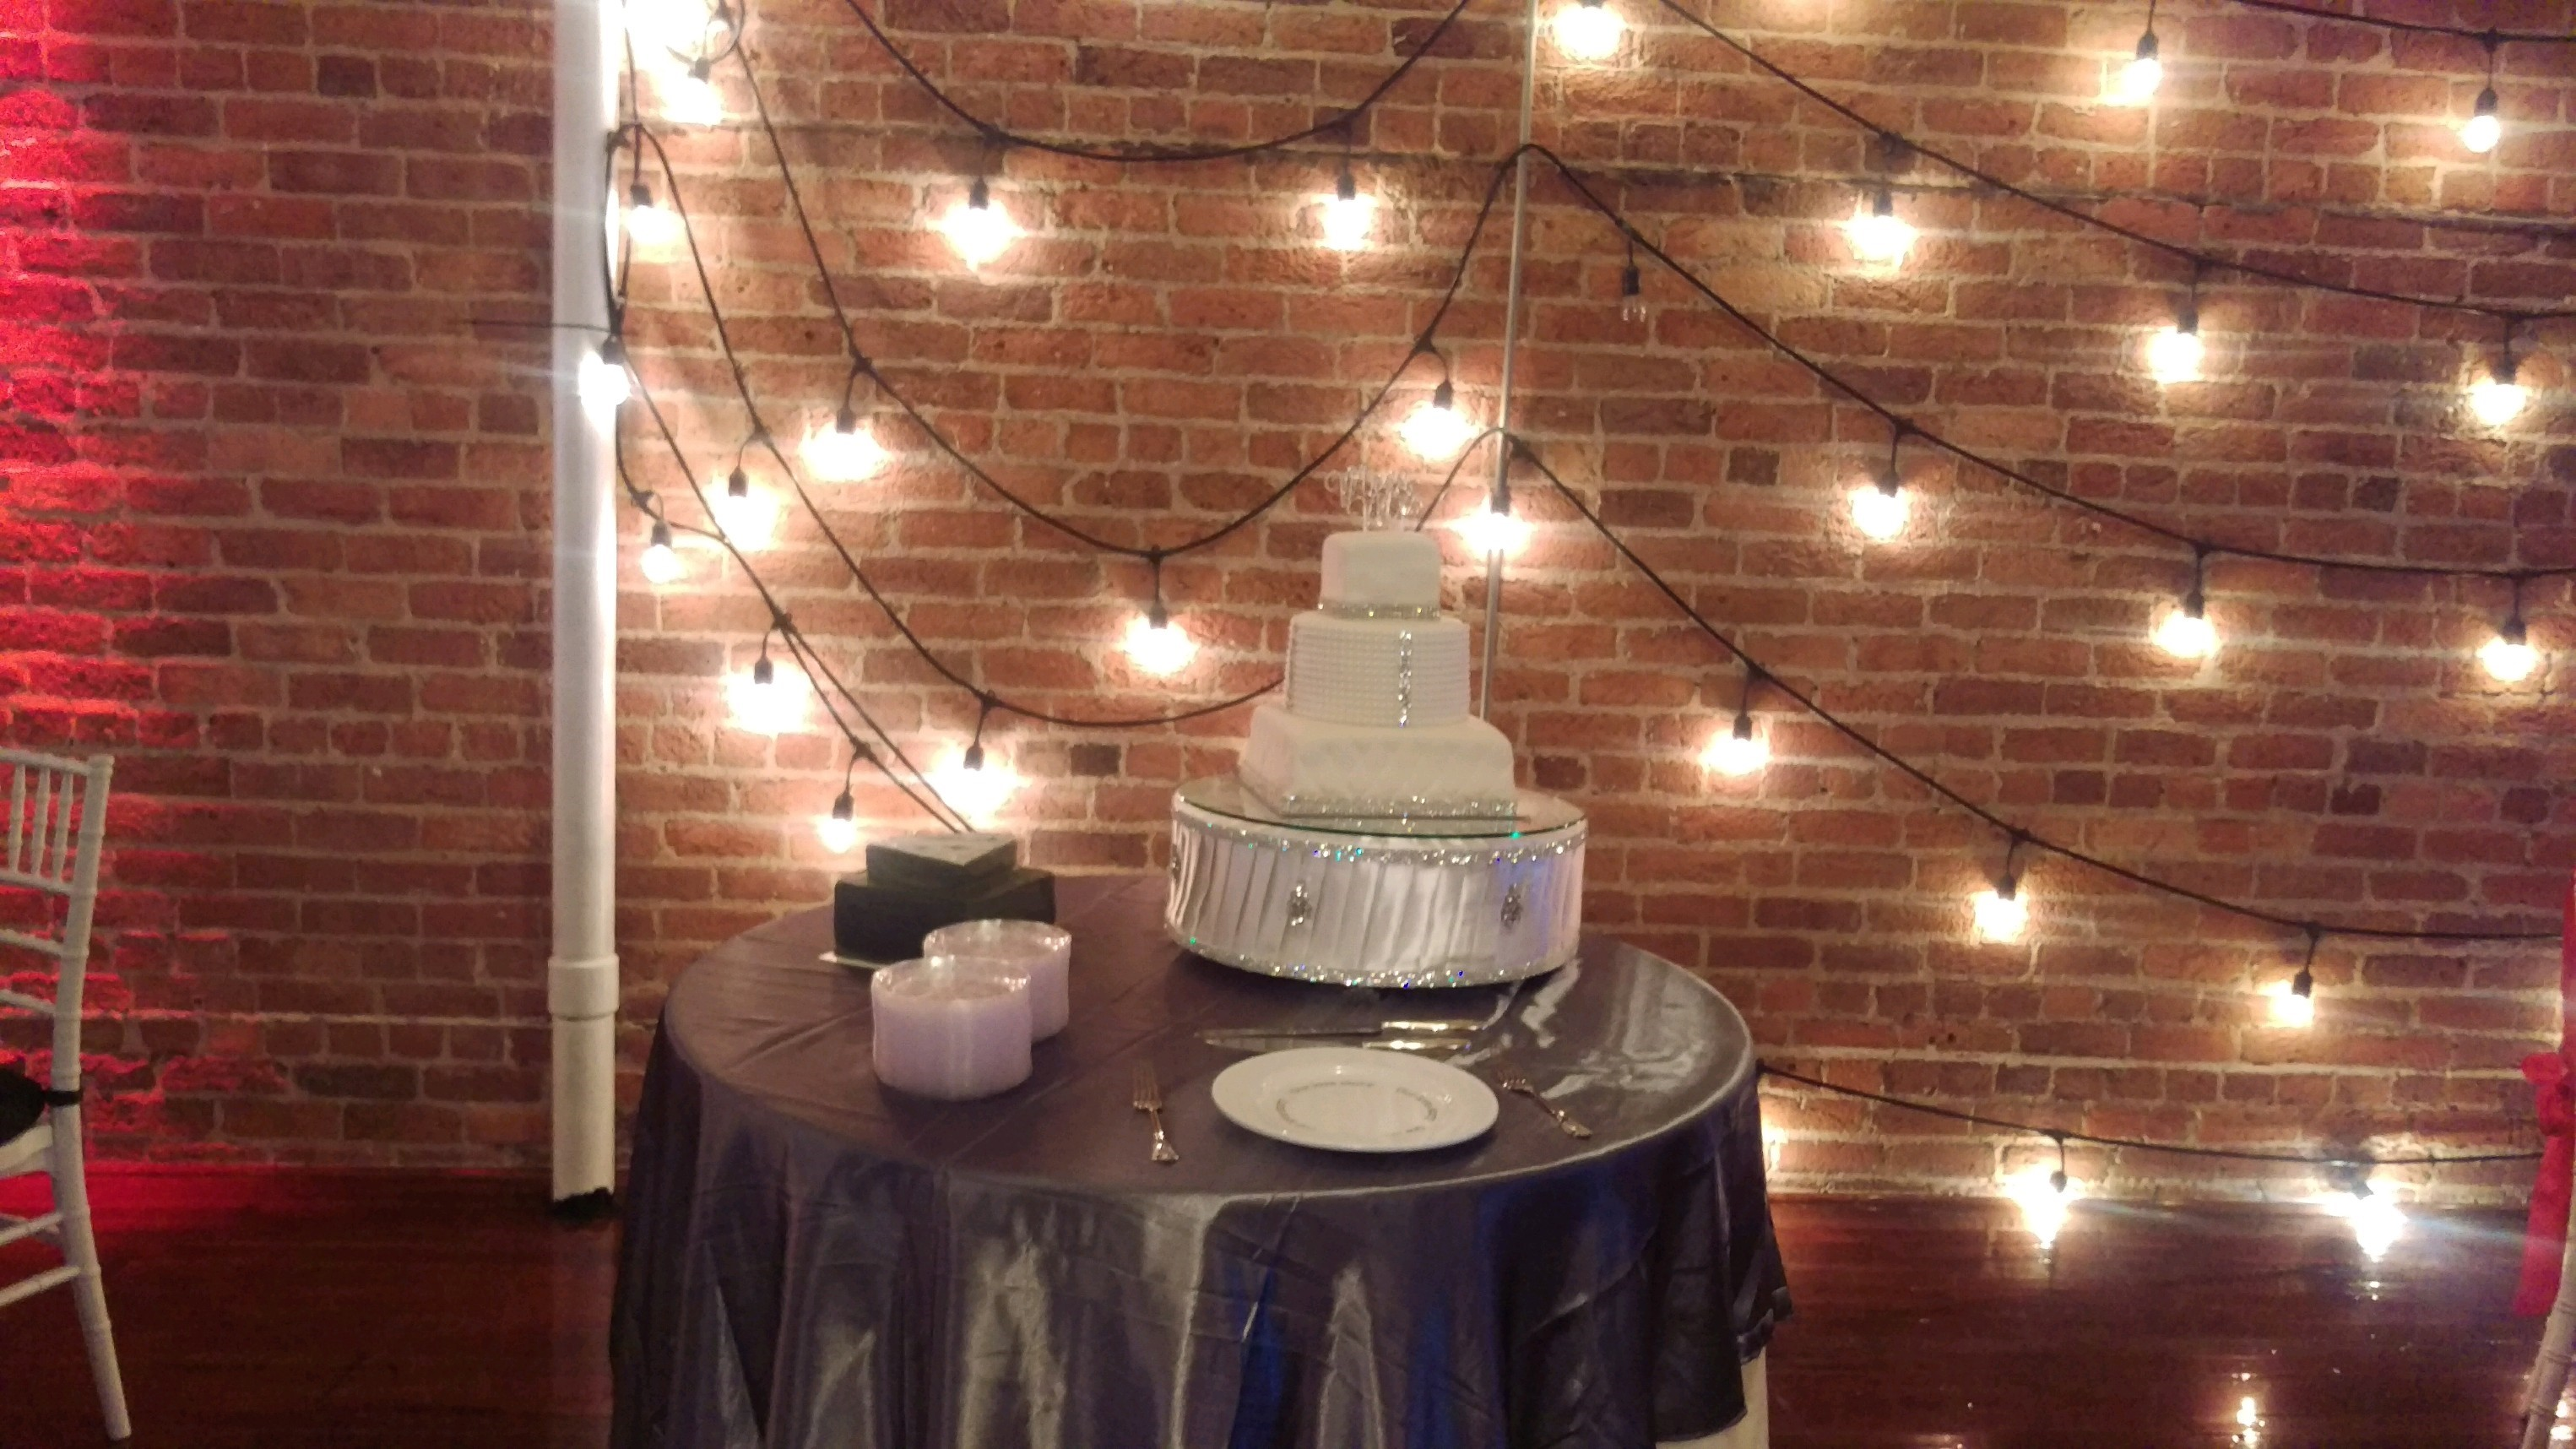 Round table with a decorated white cake on top and stacks of dessert plates on the side by a brick wall with string lights